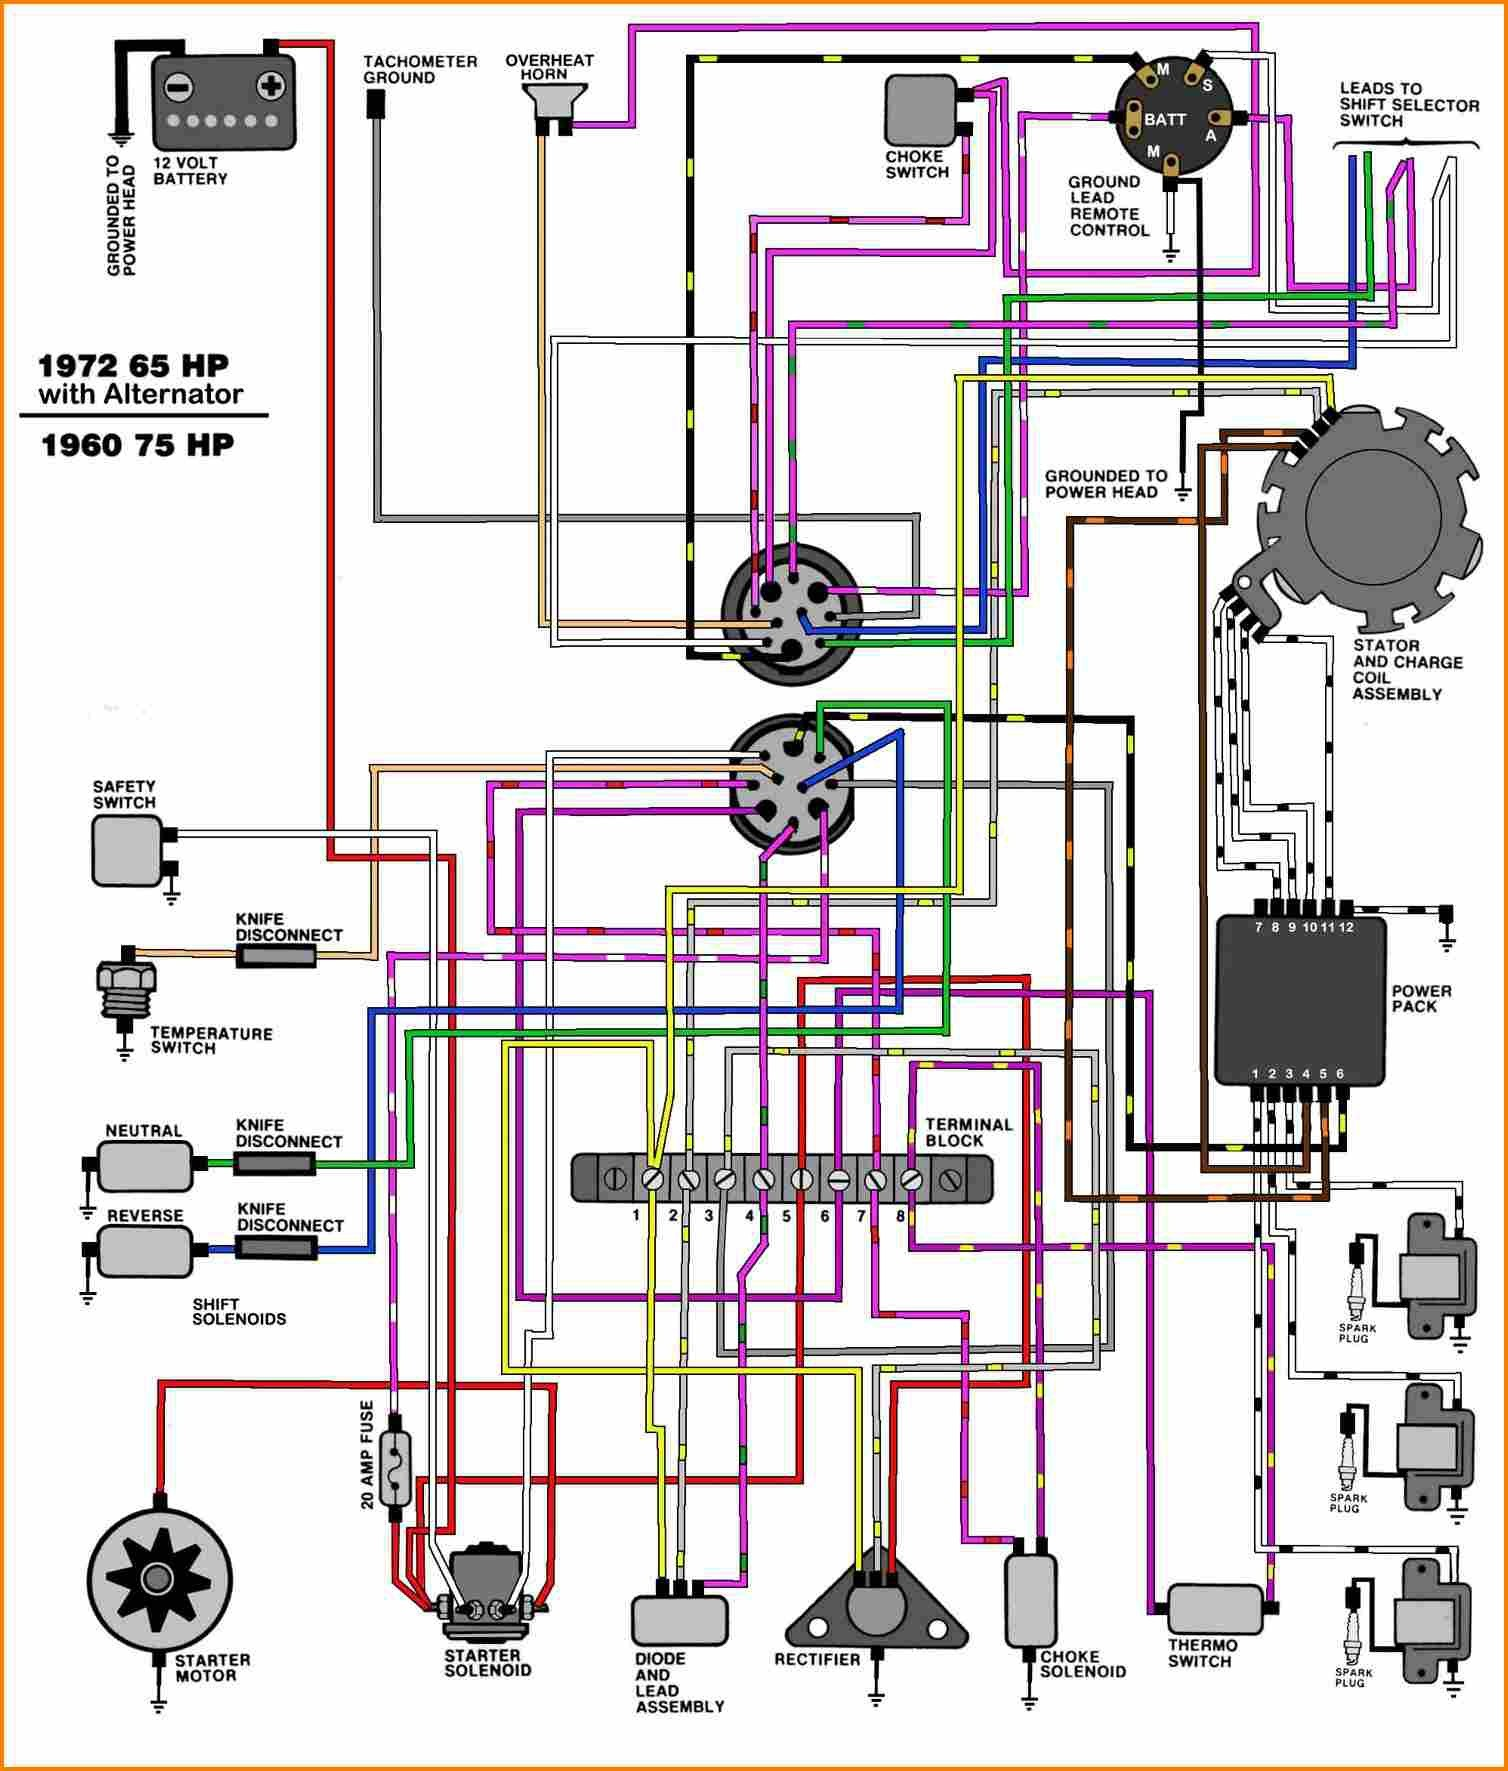 Tec Wiring Diagram Mustang Dash Mercury Outboard 5005800 Brp Evinrude Ignition Switch 28 Spl Circuit And Rh Thewiringdiagram Today